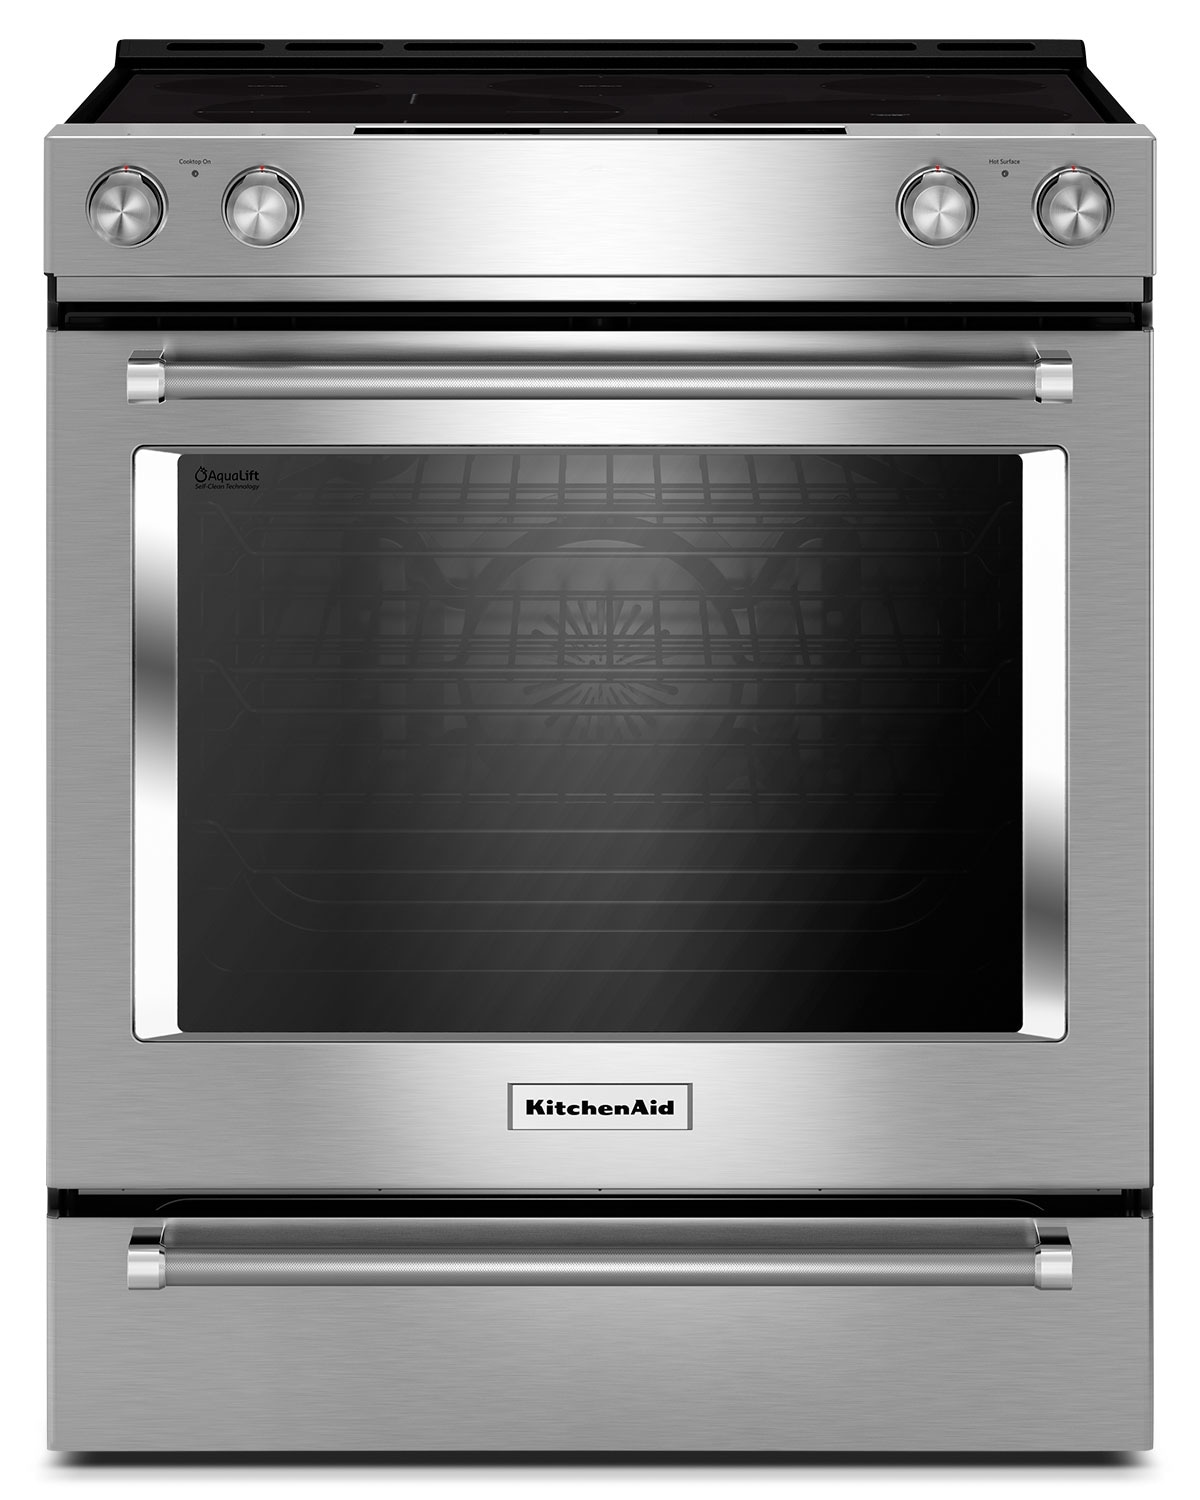 Cooking Products - KitchenAid 6.4 Cu. Ft. Slide-In Electric Convection Range - Stainless Steel